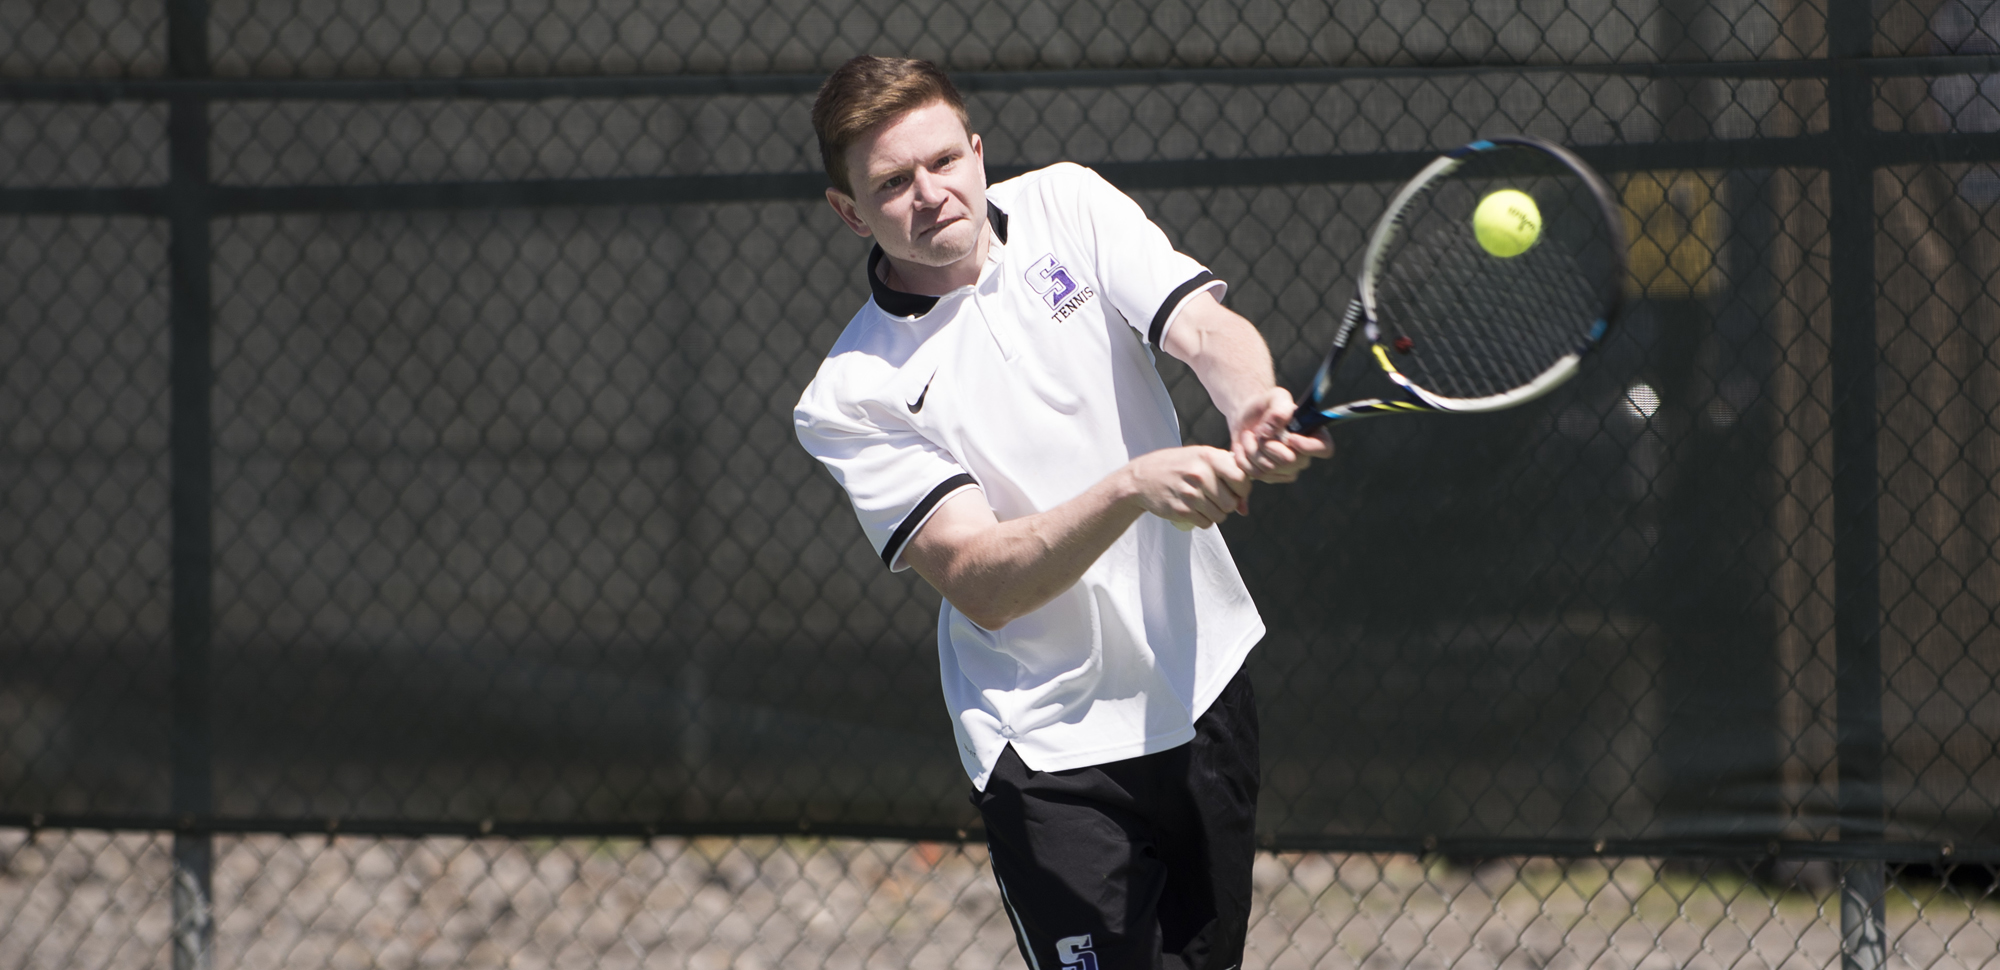 Keller McGurrin won a pair of matches to lead Scranton past Roger Williams in the Royals' second match on Wednesday.